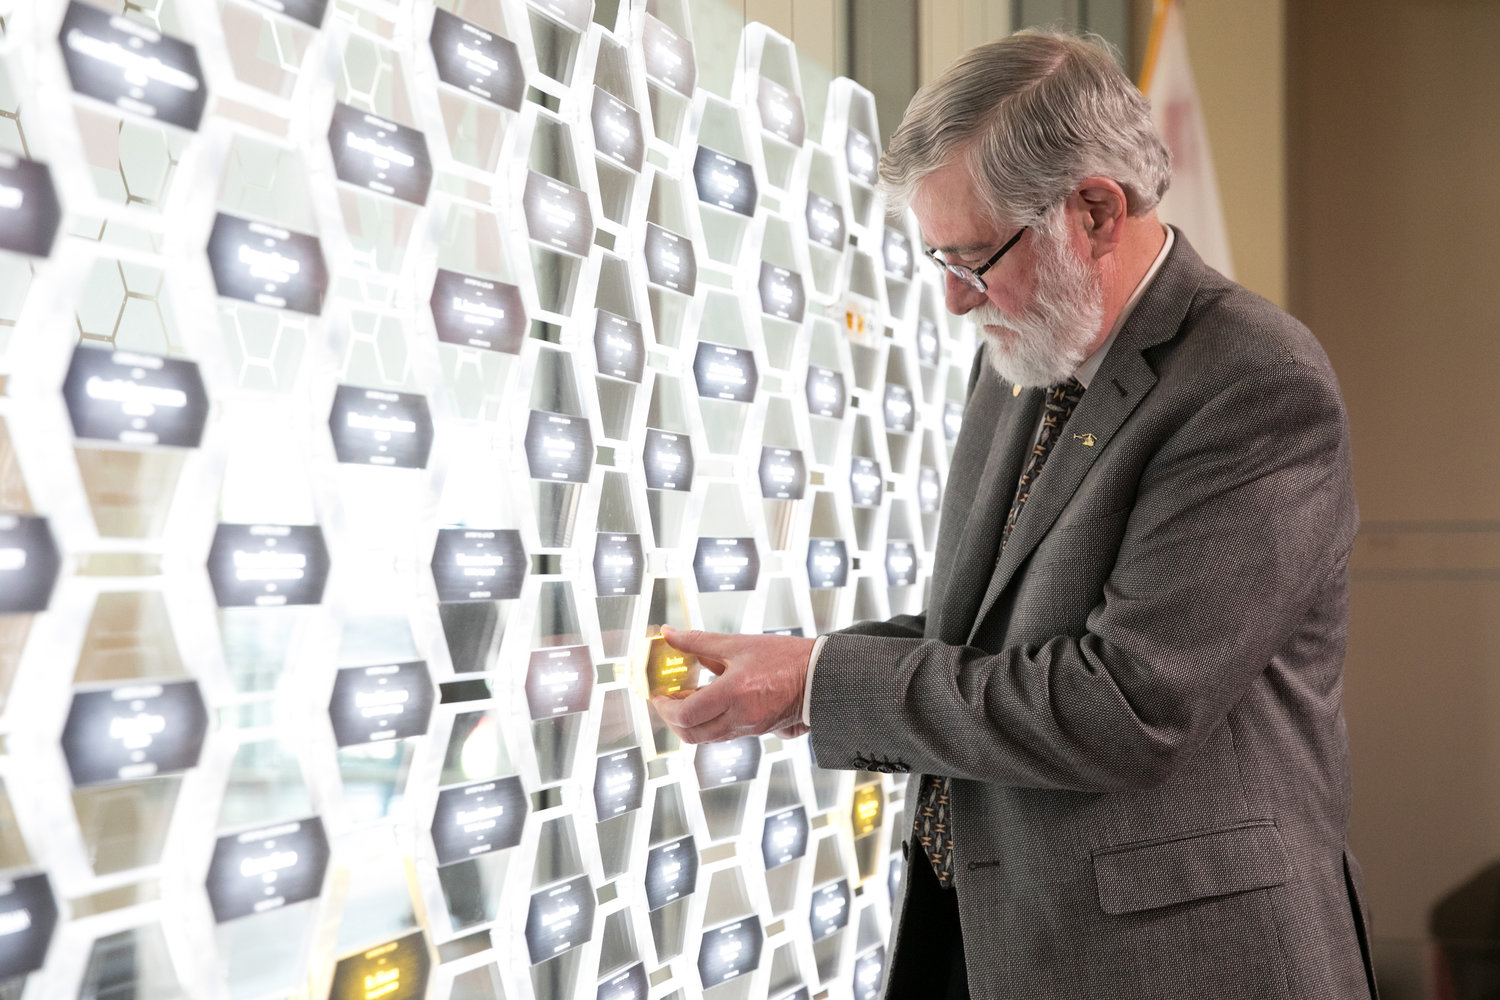 Don places his hexagon in the iconic Gallery of Icons inside NIHV Alexandria, VA based museum.